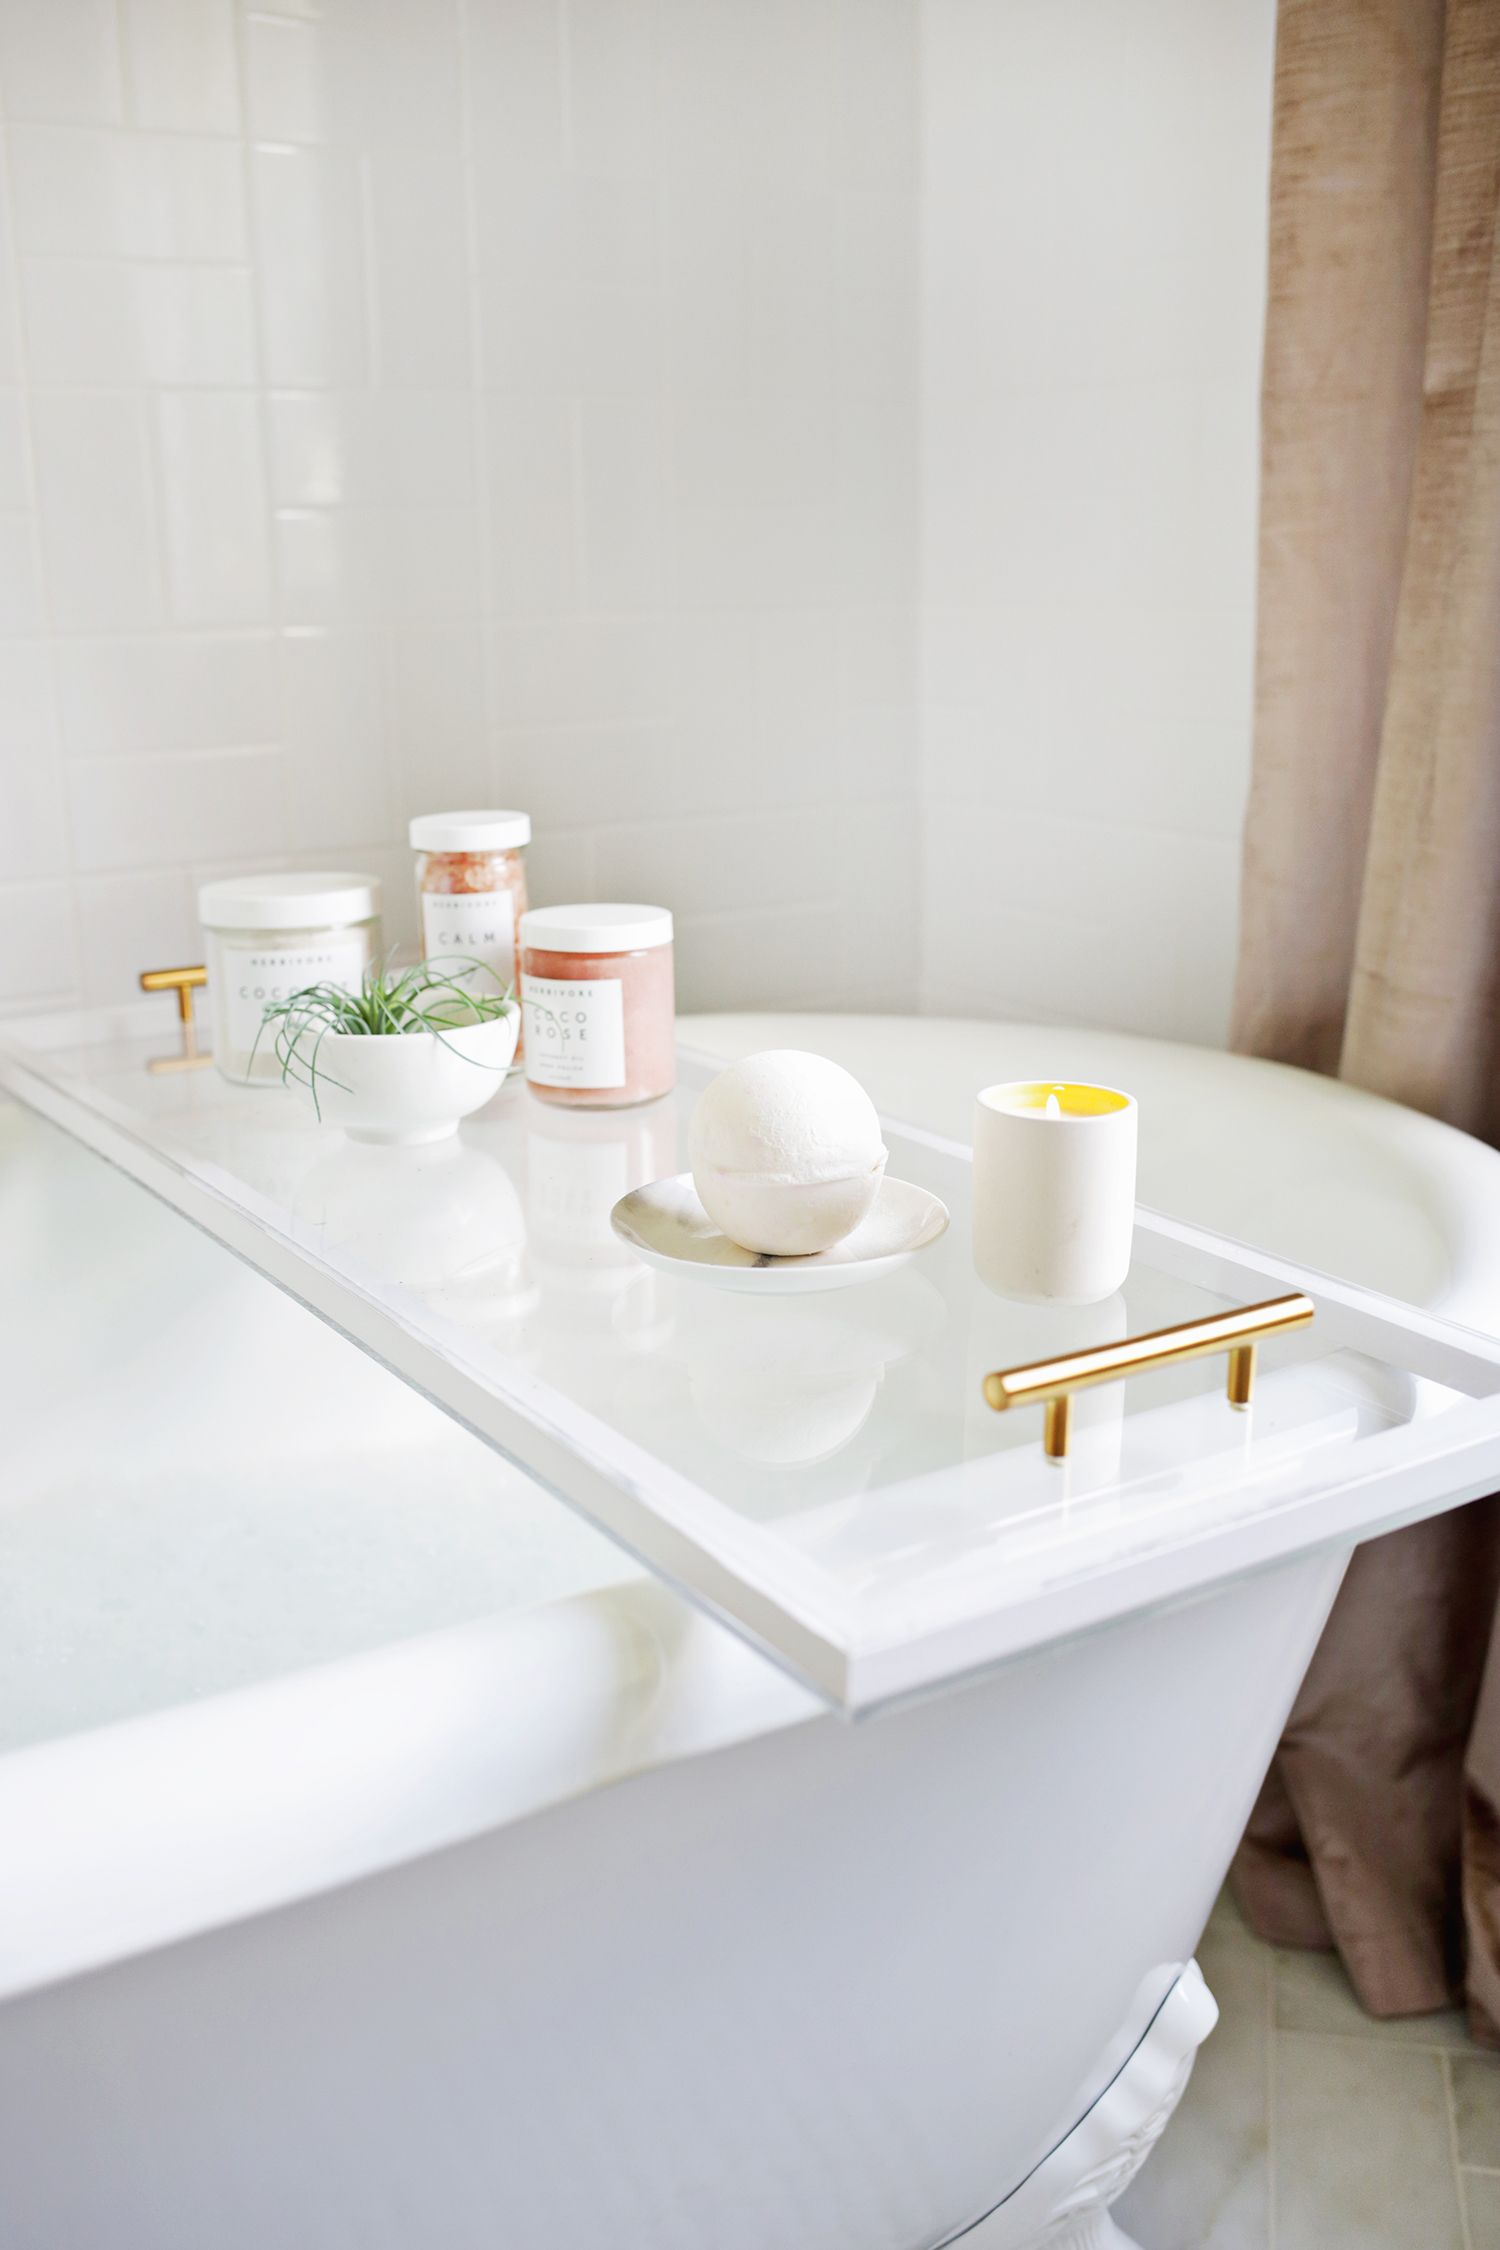 Diy lucite bathtub caddy diy things pinterest for Bathroom tray